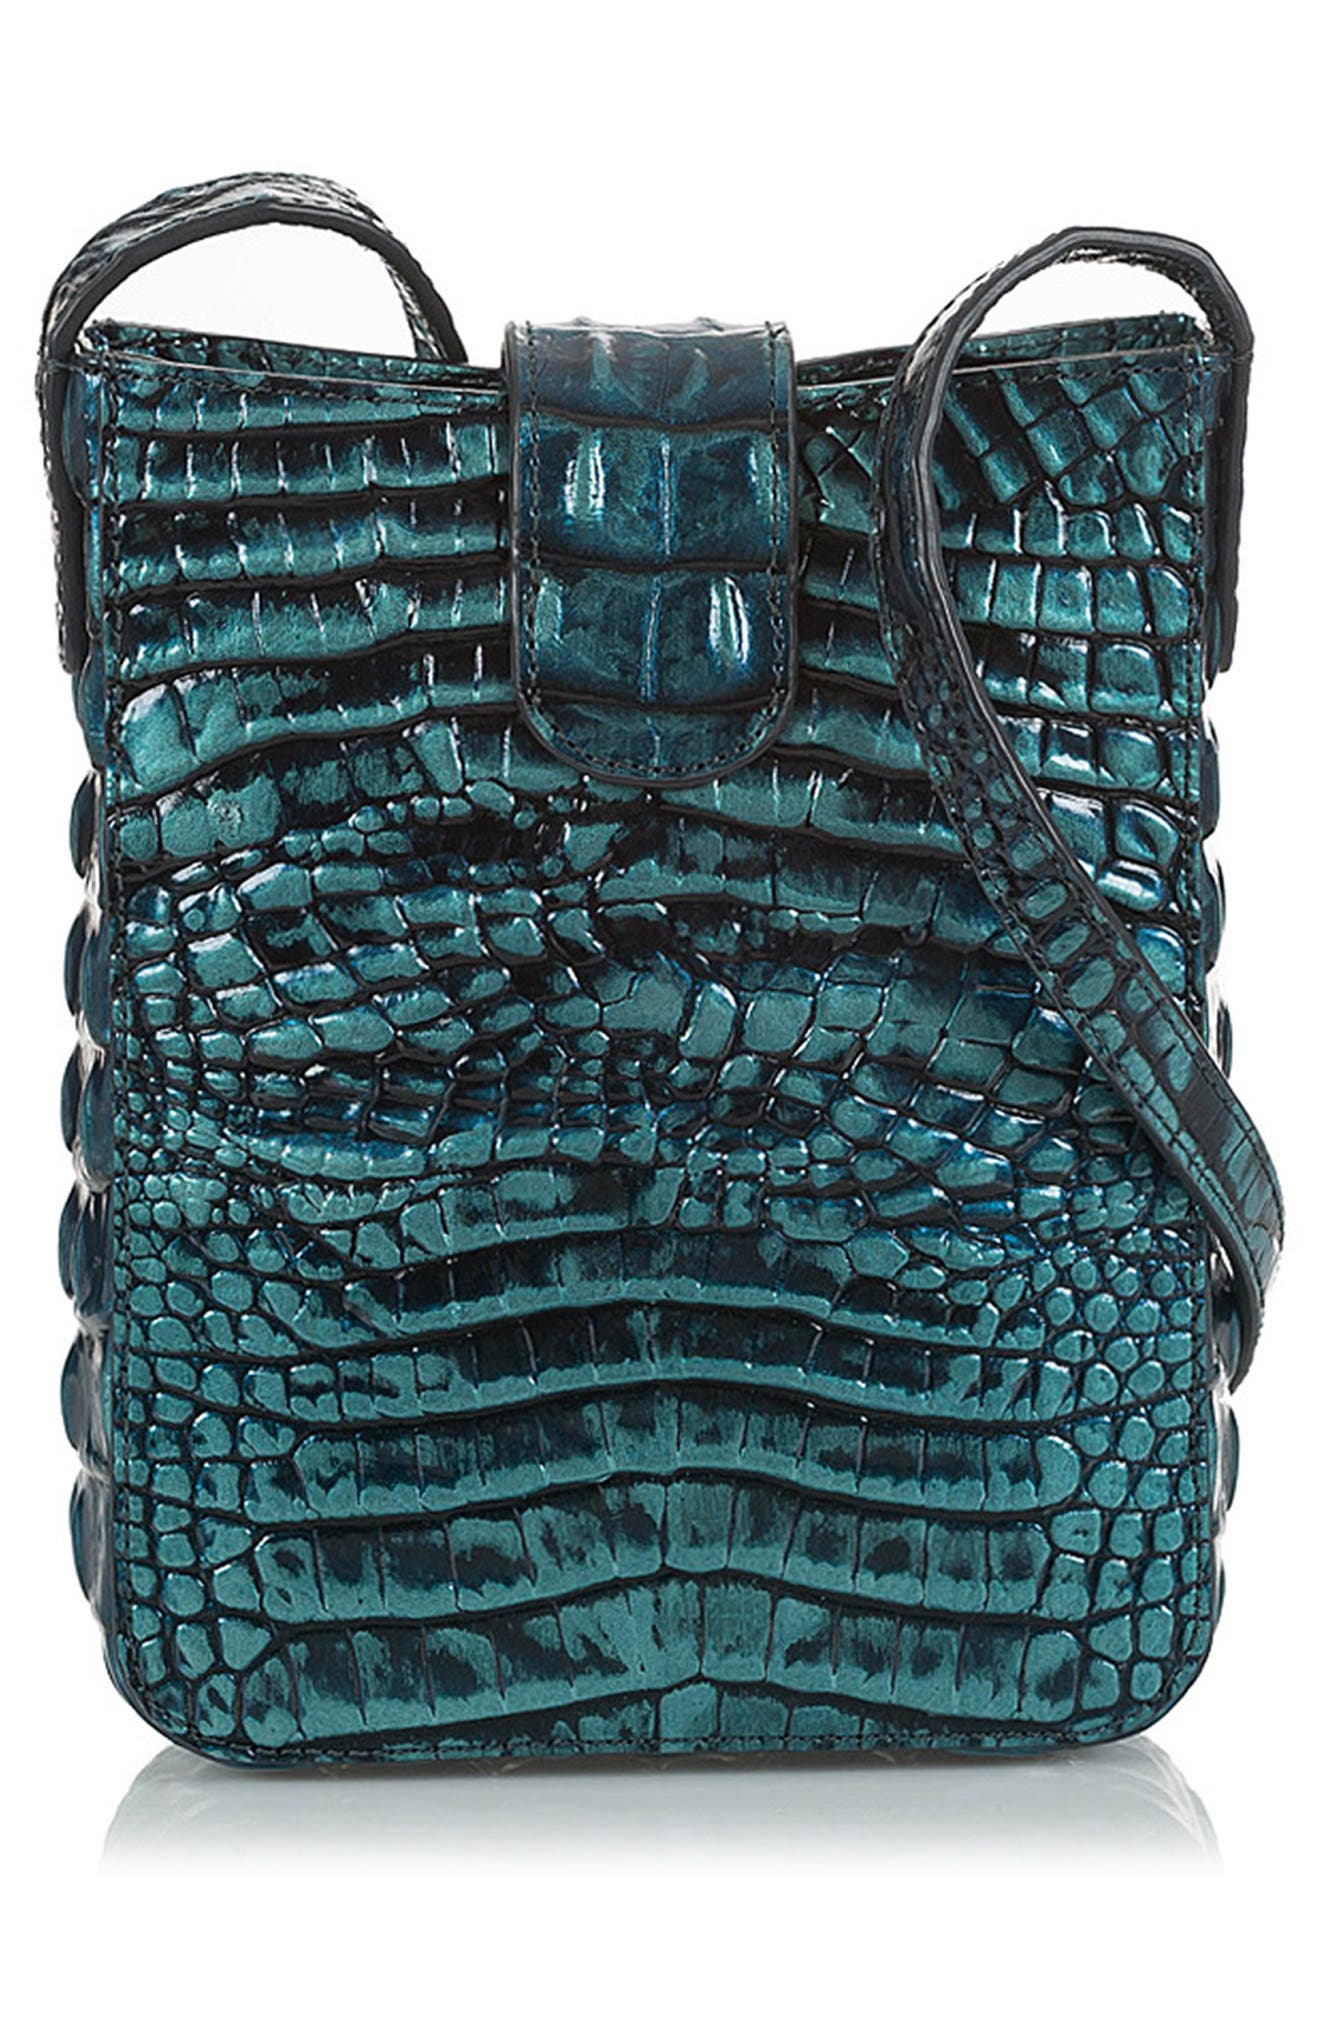 Marley Croc Embossed Leather Crossbody Bag,                             Alternate thumbnail 2, color,                             VERDIGRIS